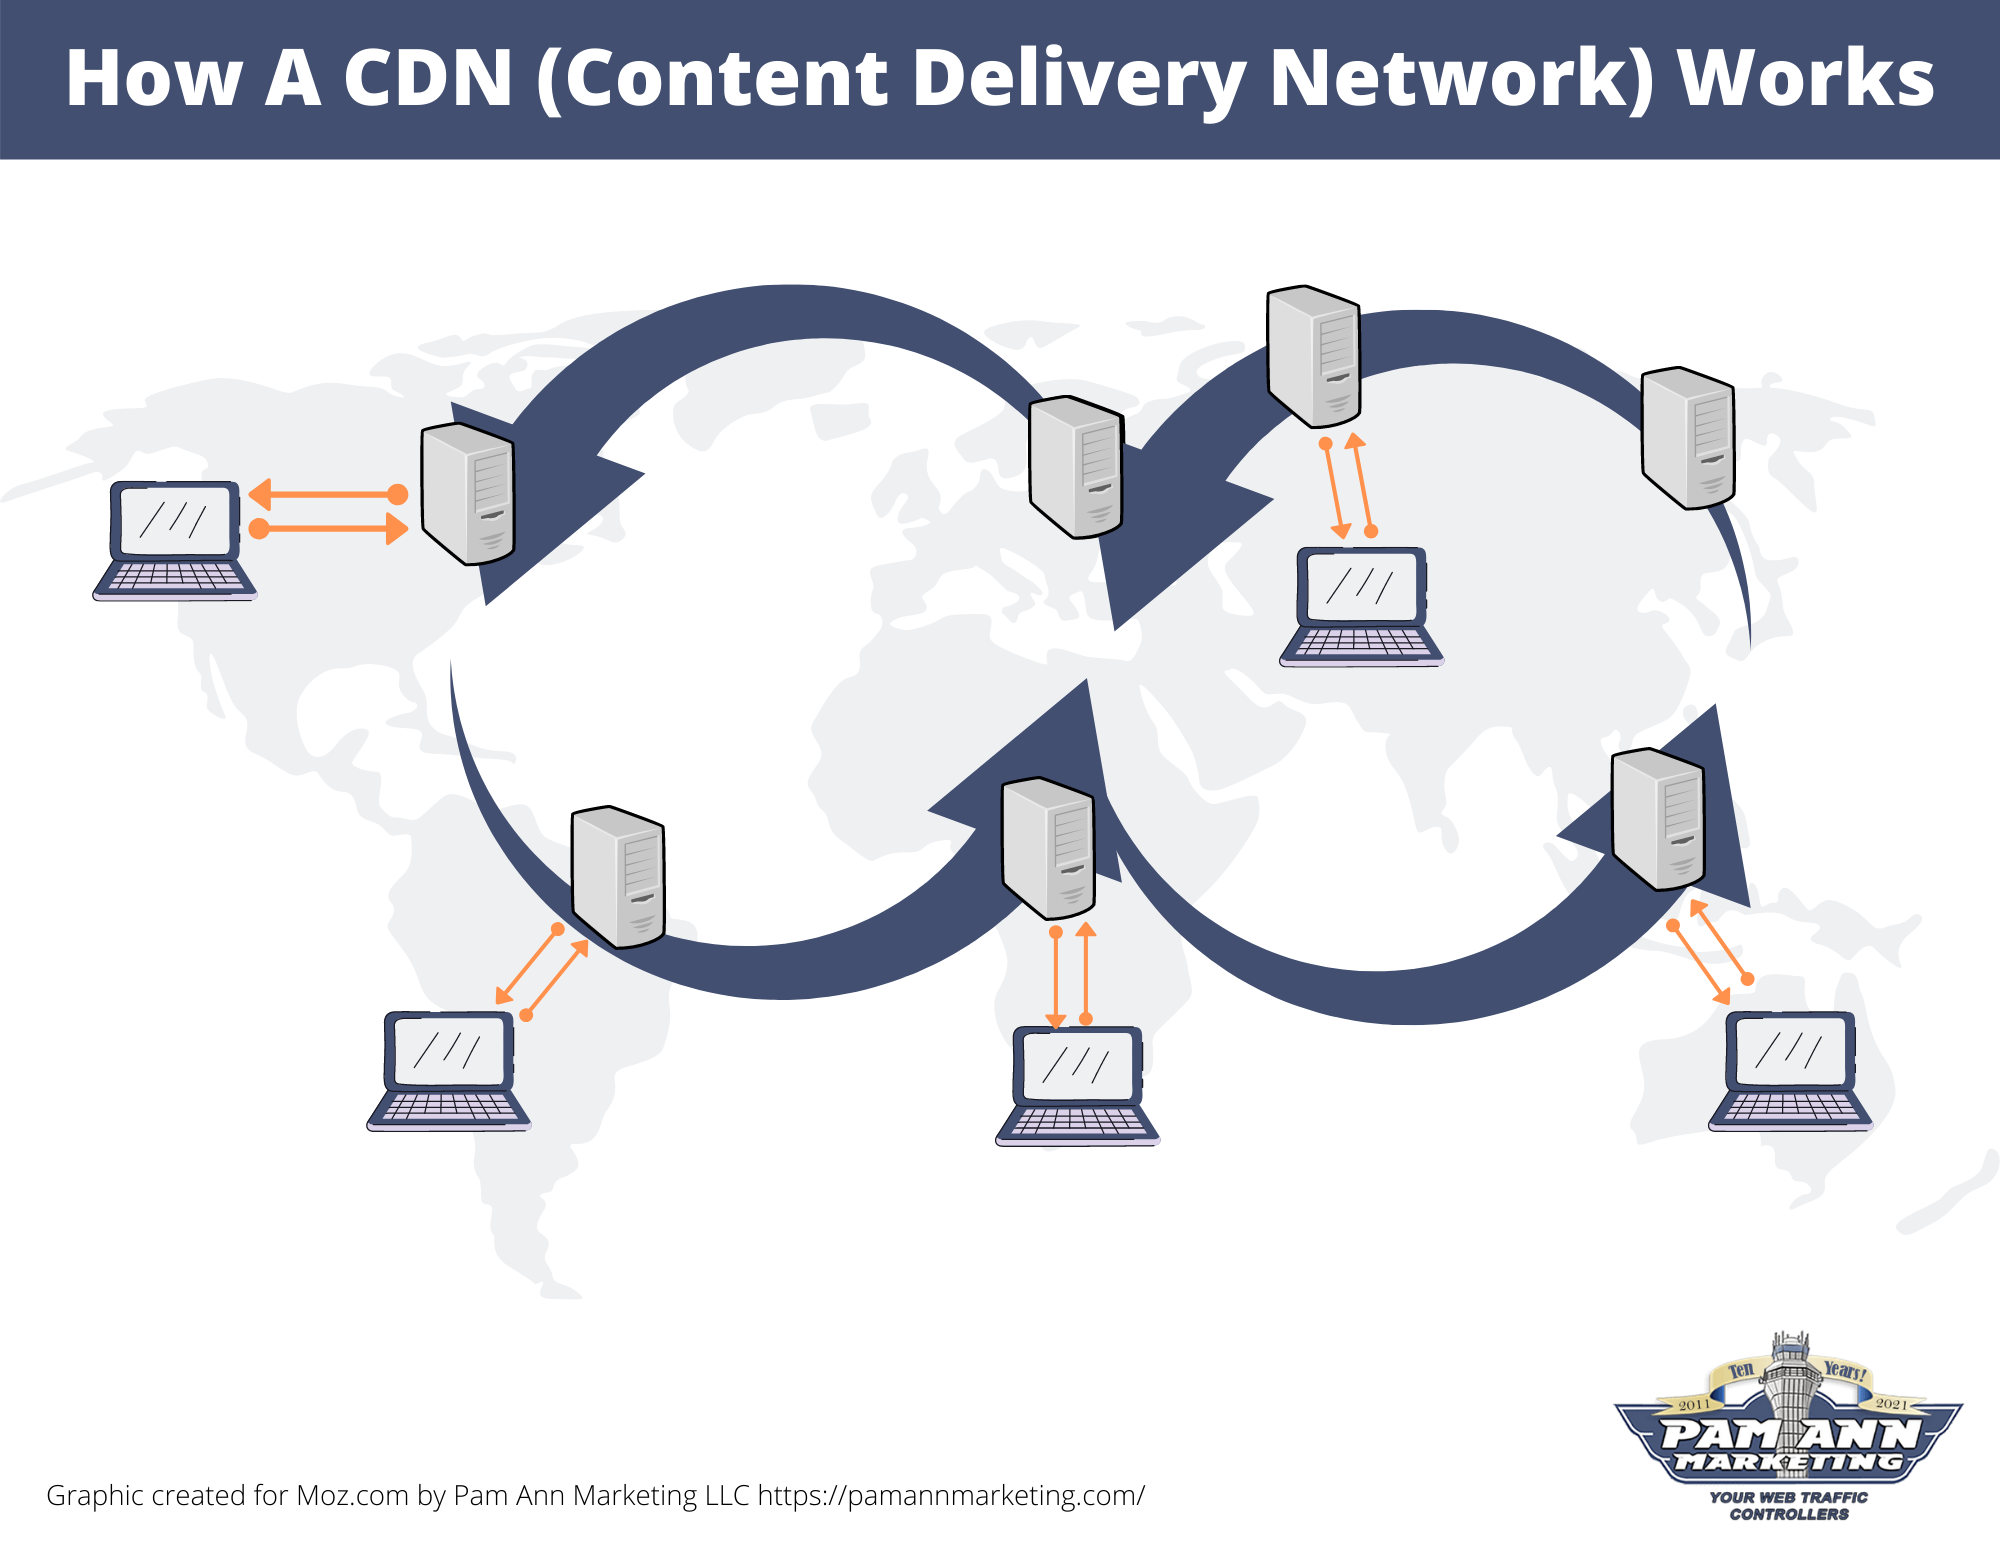 How A CDN (Content Delivery Network) Works